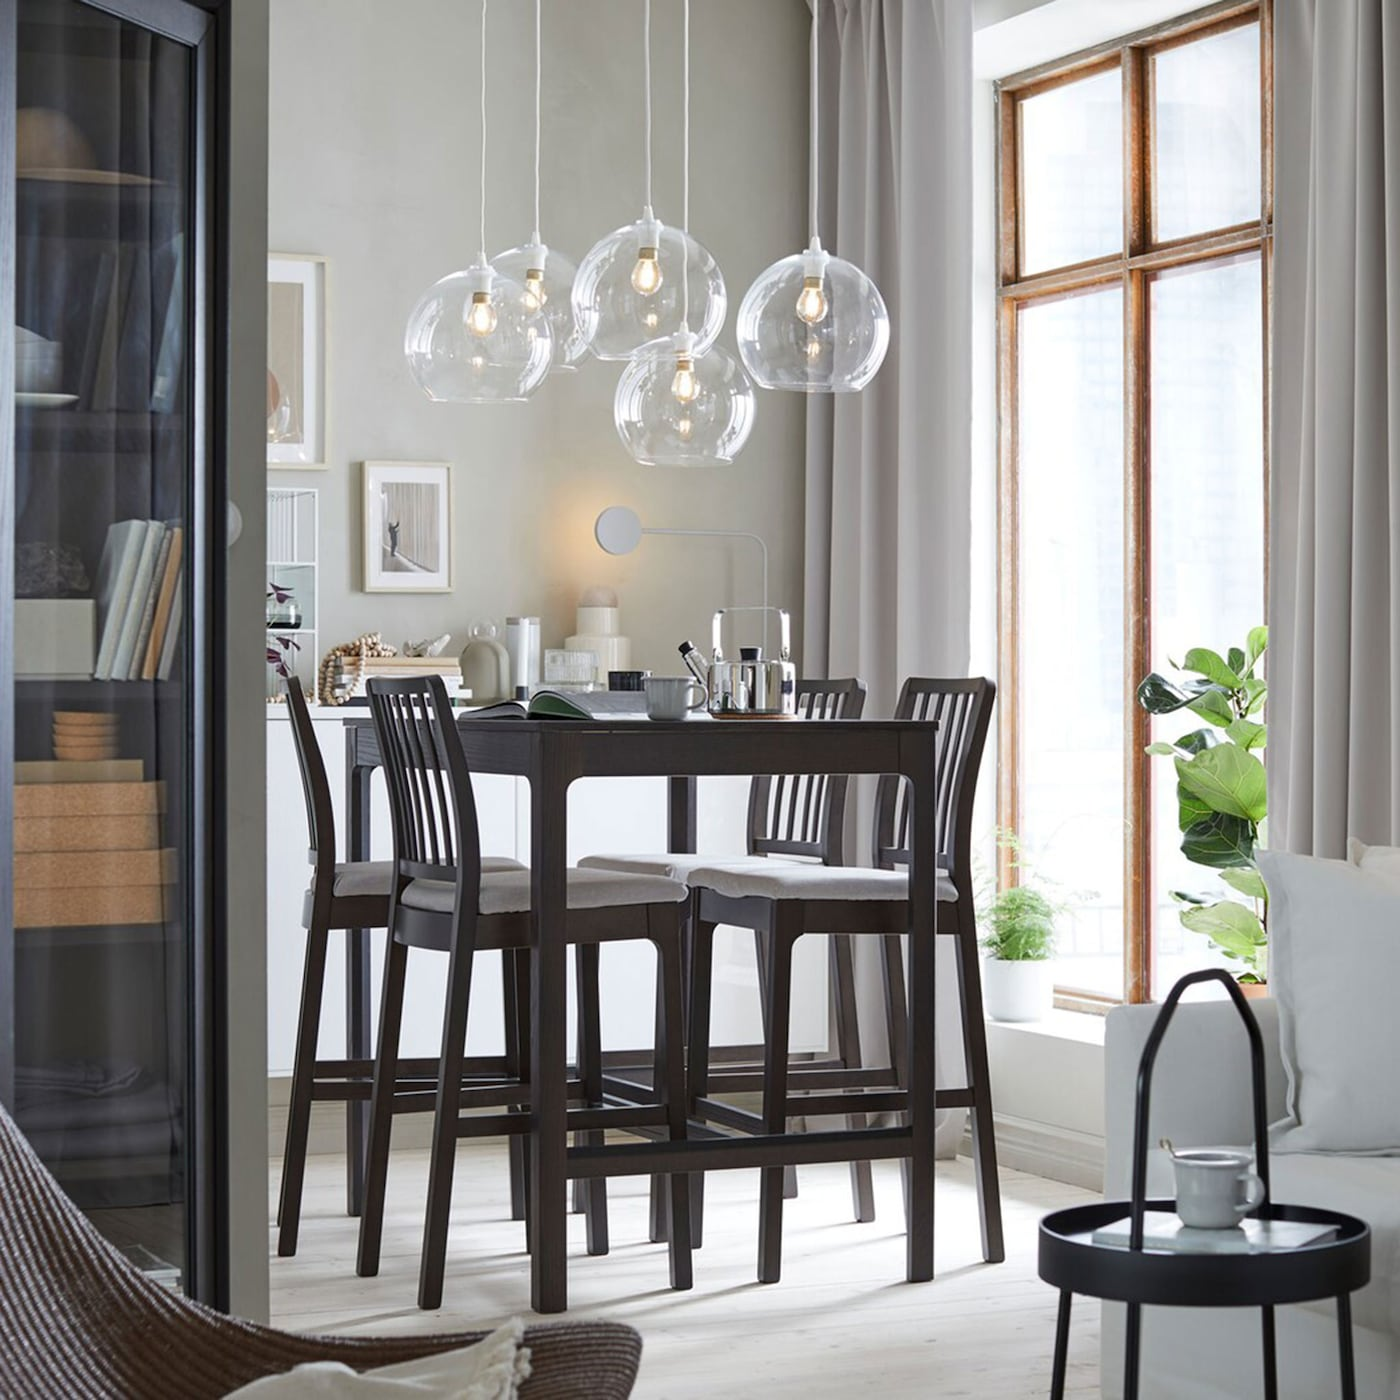 Sale Da Pranzo Moderne Ikea furnishing ideas & inspiration for your dining room - ikea